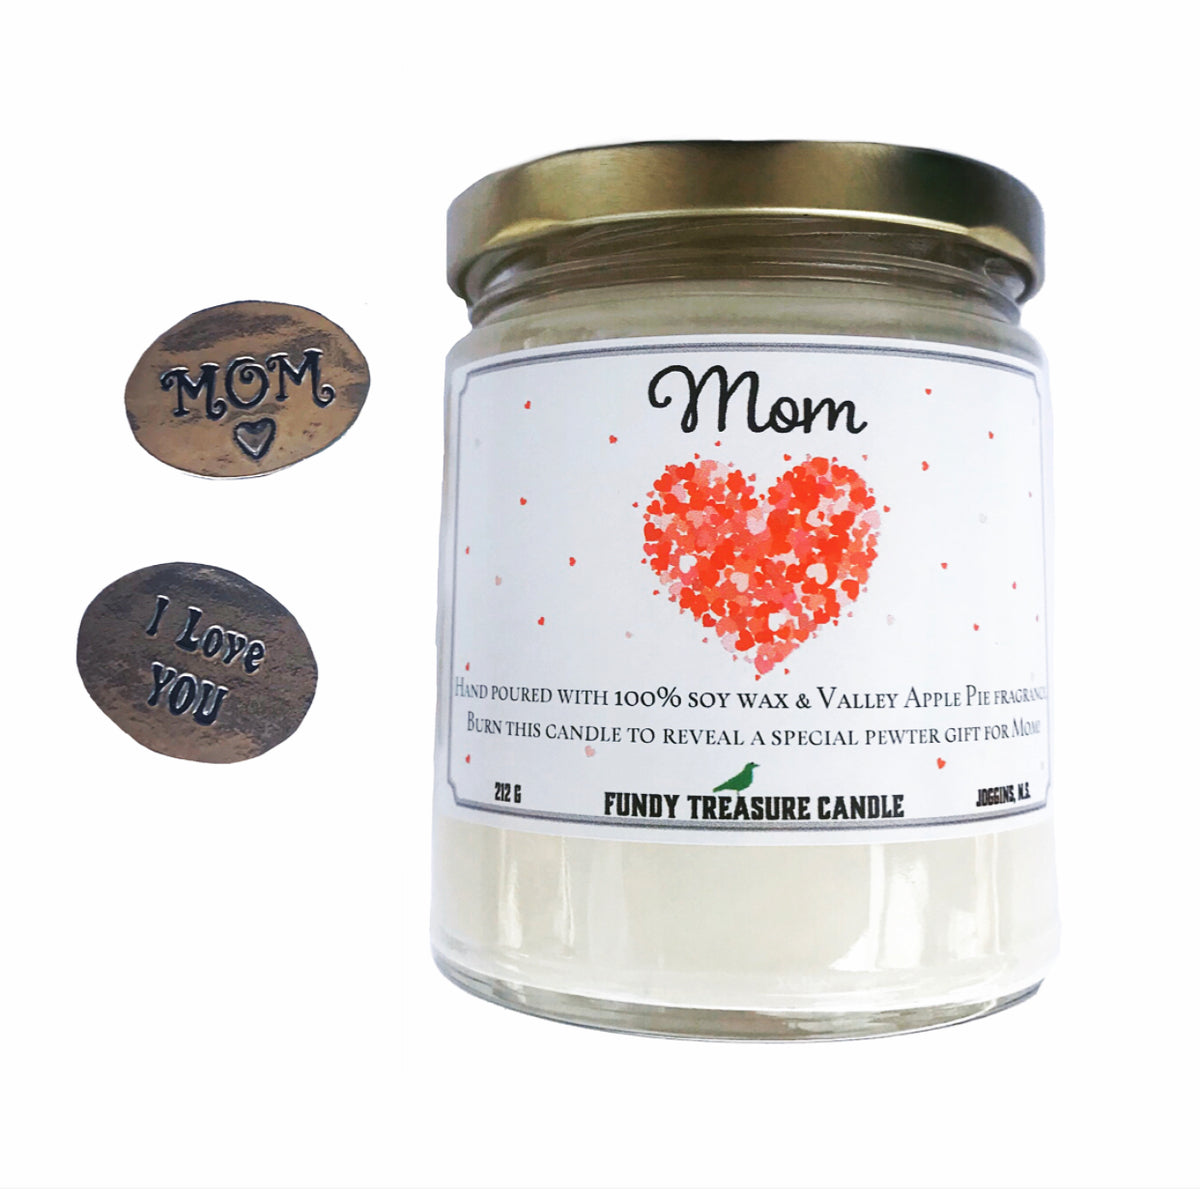 Mom Candle 7.5 oz